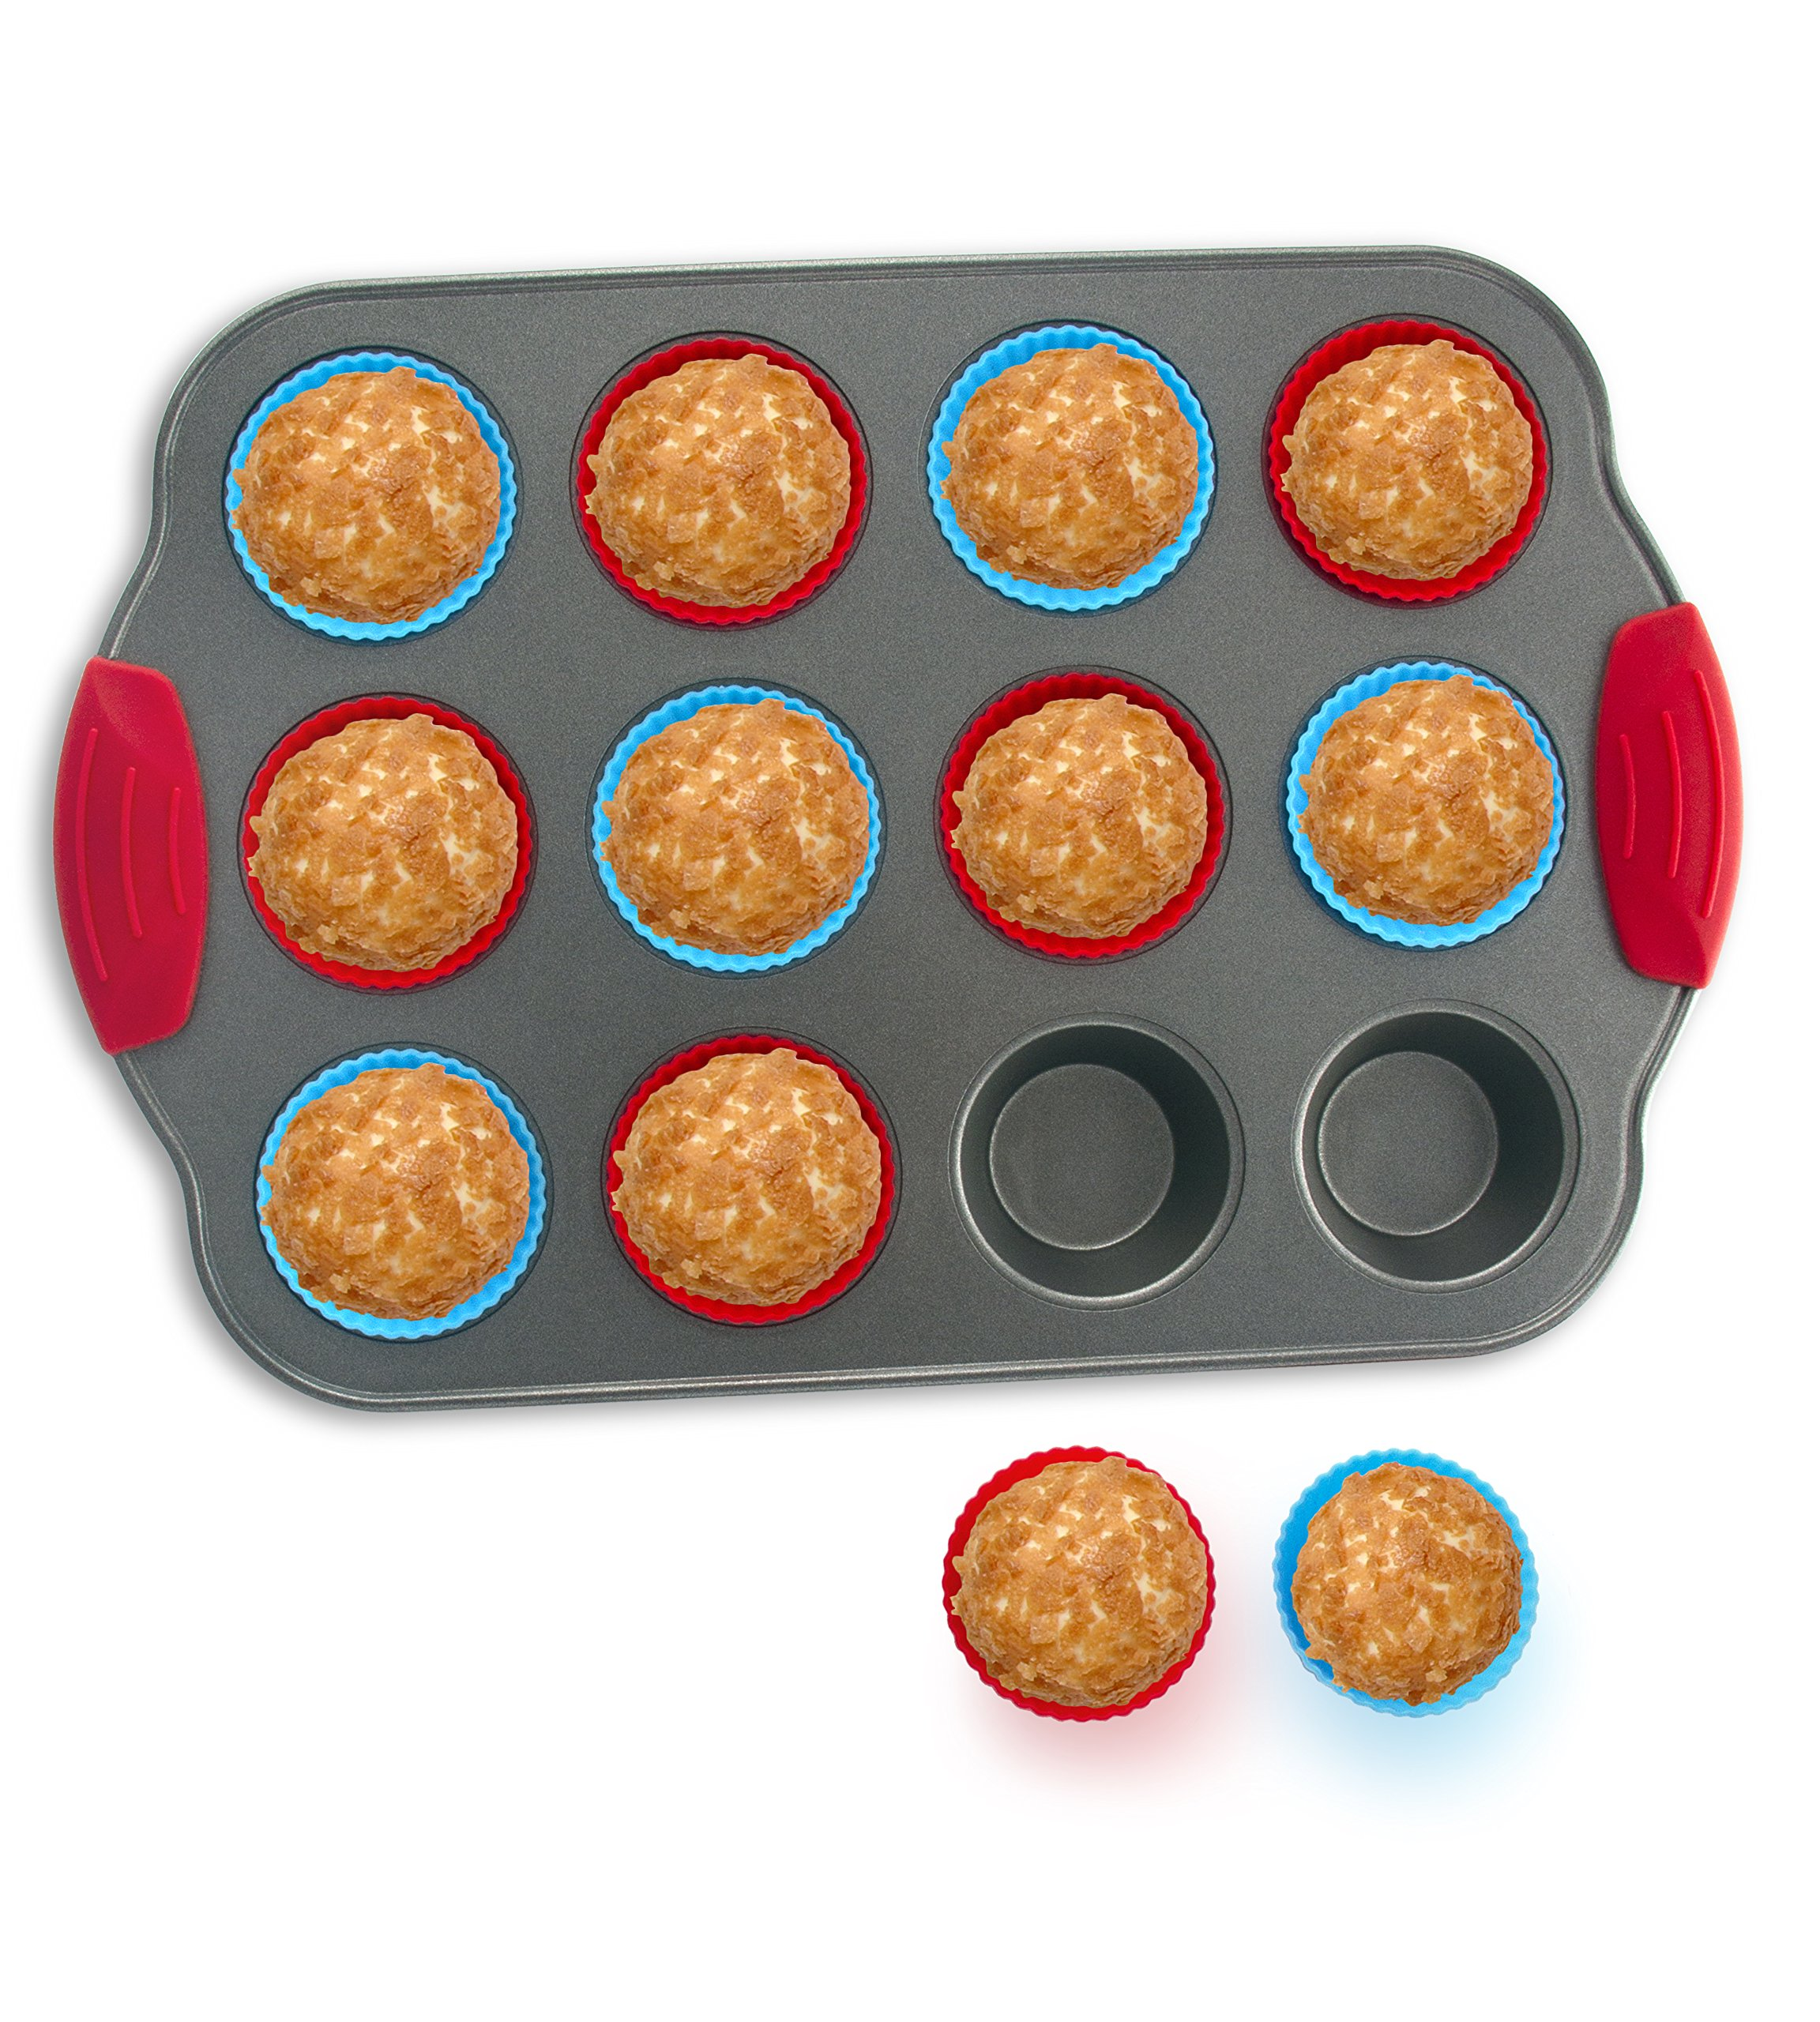 Boxiki Kitchen 12-Cup Mini Muffin Pan with Silicone Muffin Cups (Set of 12) Professional Nonstick Bakeware | Heavy Grade Steel and Silicone Muffin Tins by Boxiki Kitchen